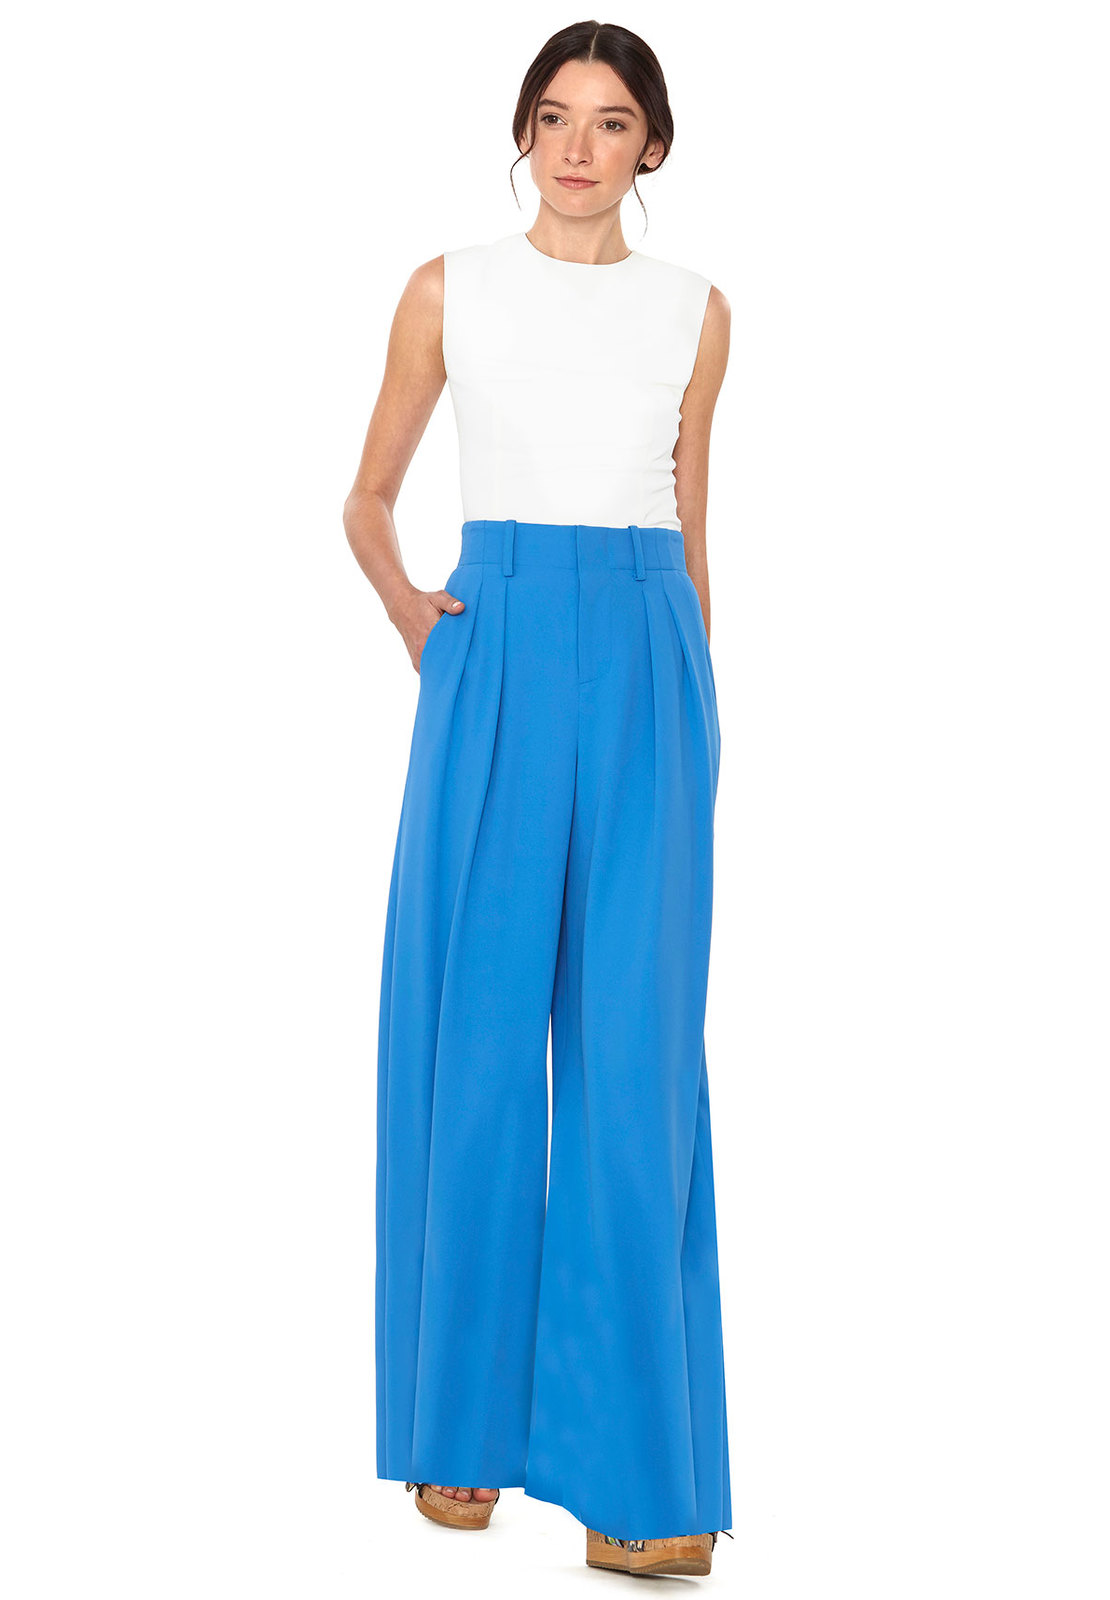 alice_and_olivia_ELOISESTRAIGHTWIDELEGTROUSER_ROYALBLUE_888819222727_PRODUCT_01-1326726264